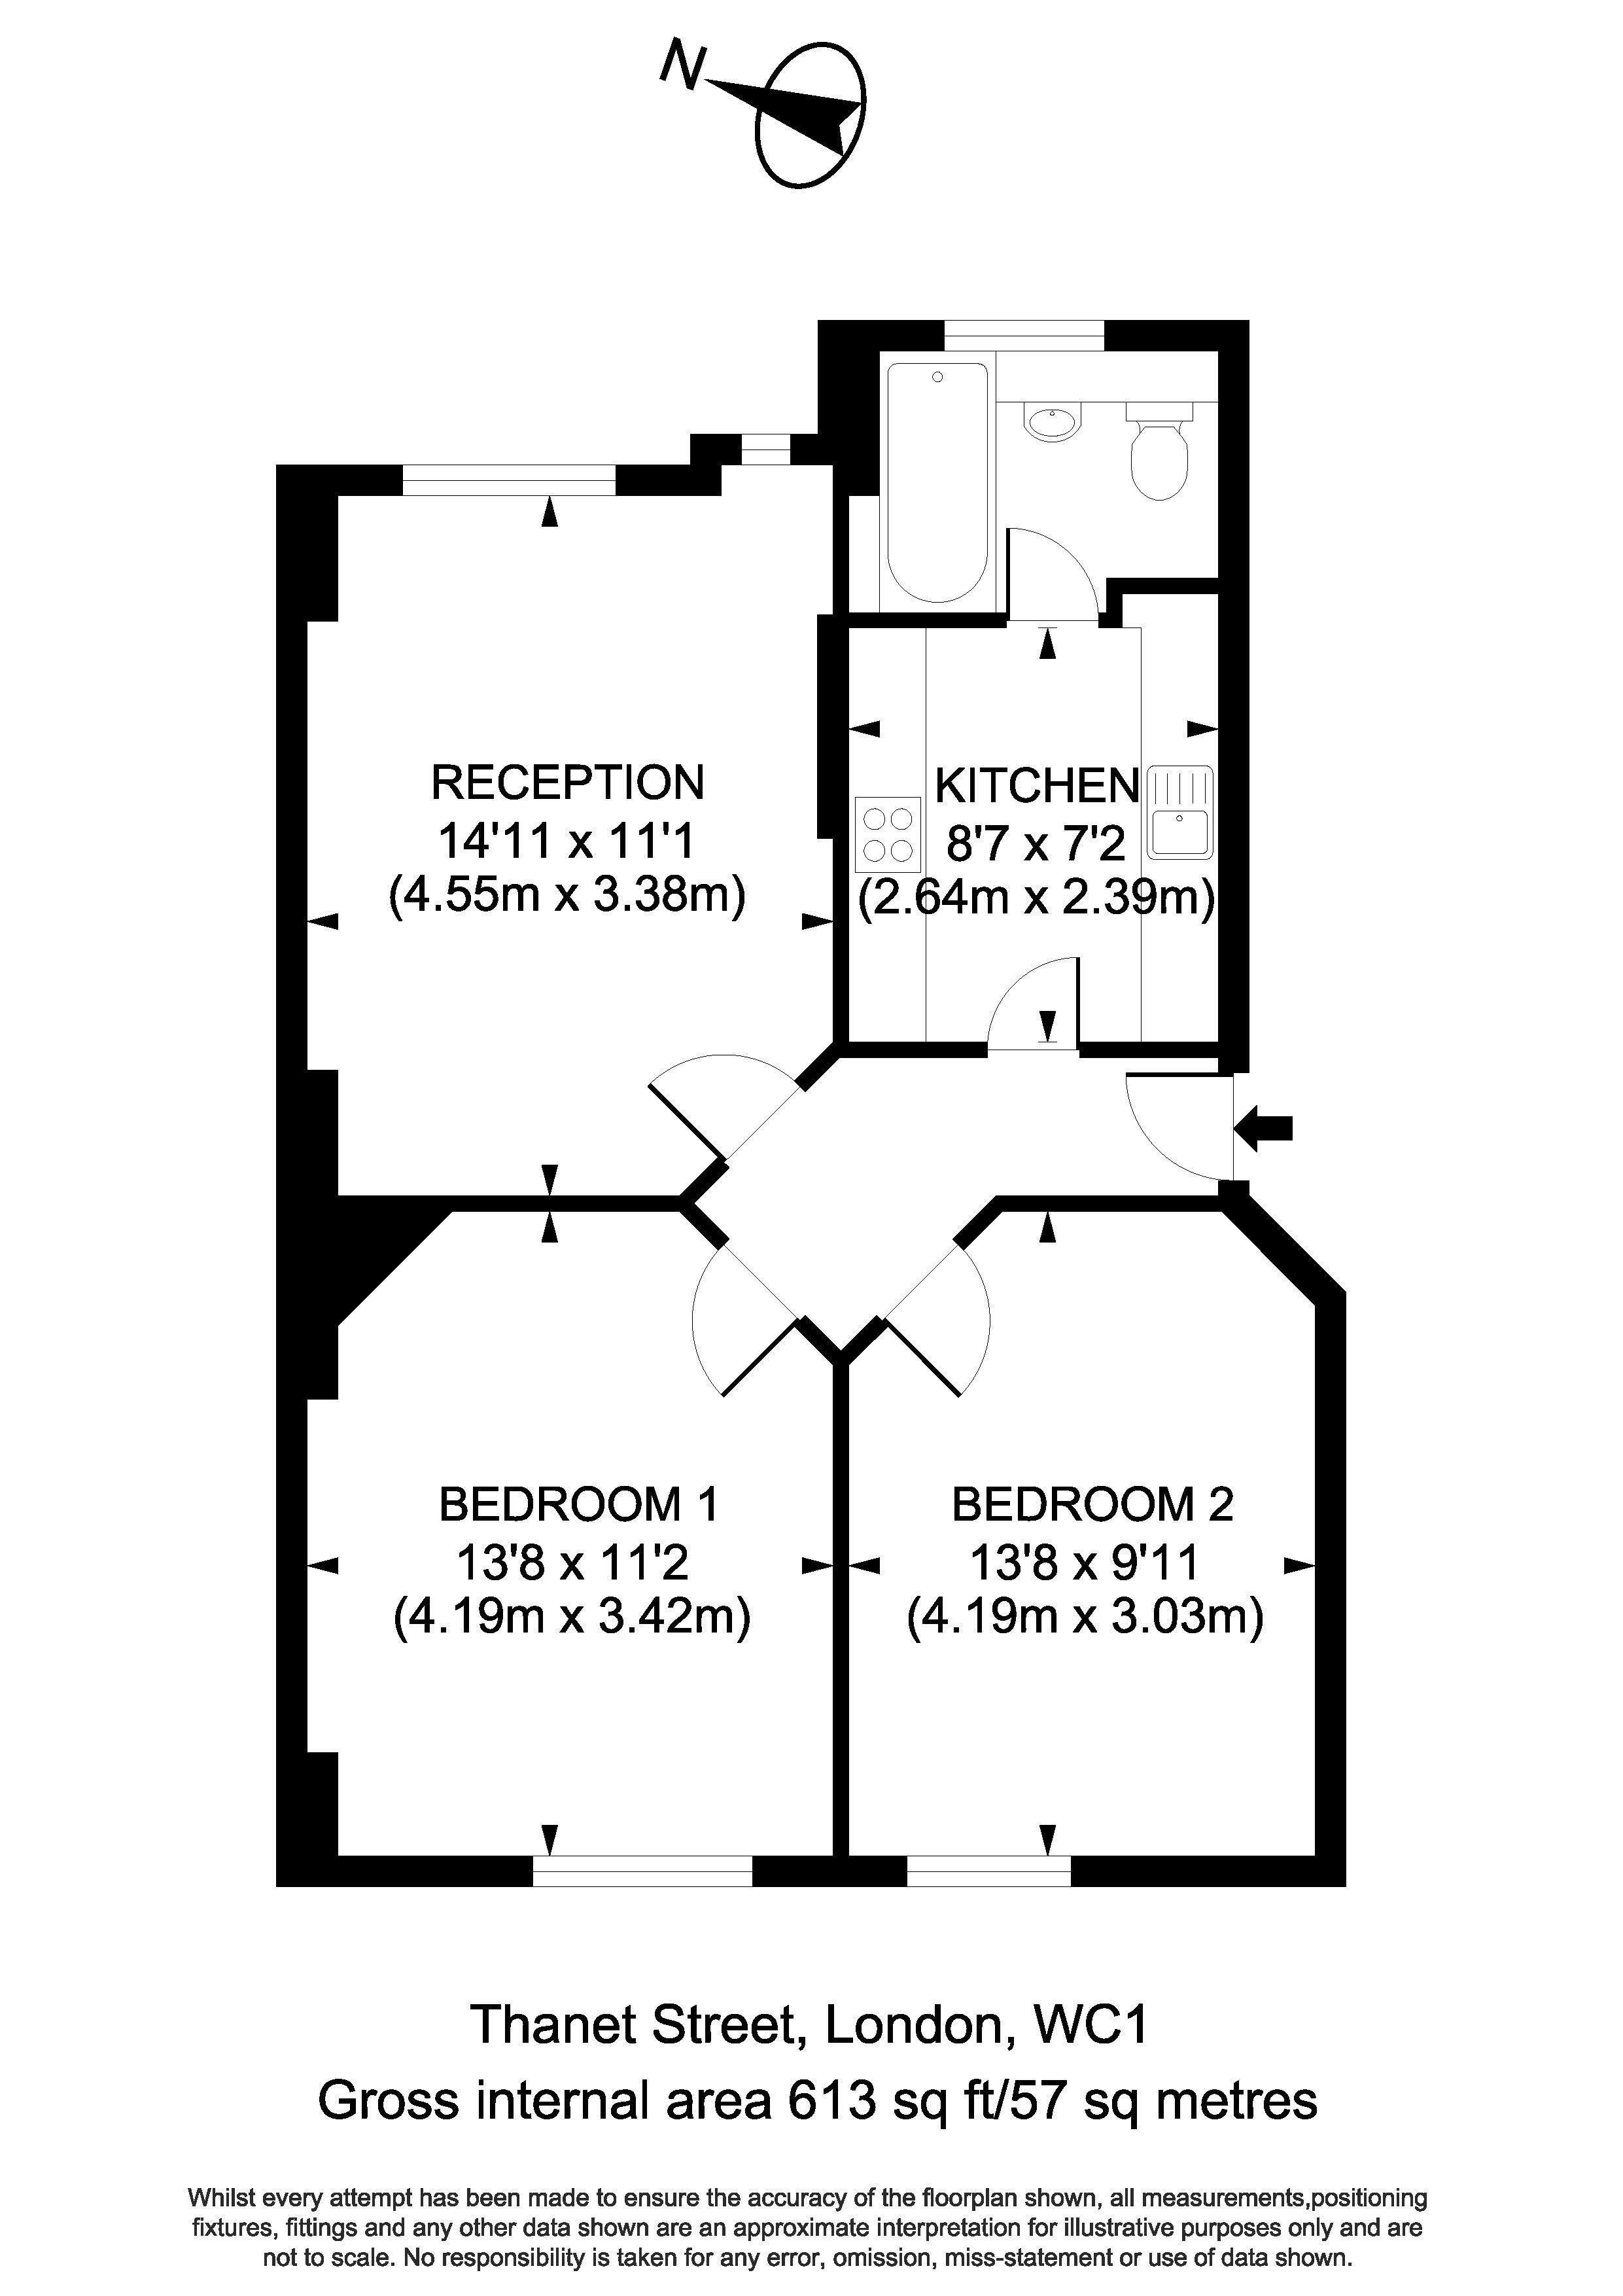 96 Thanet House - Floorplan